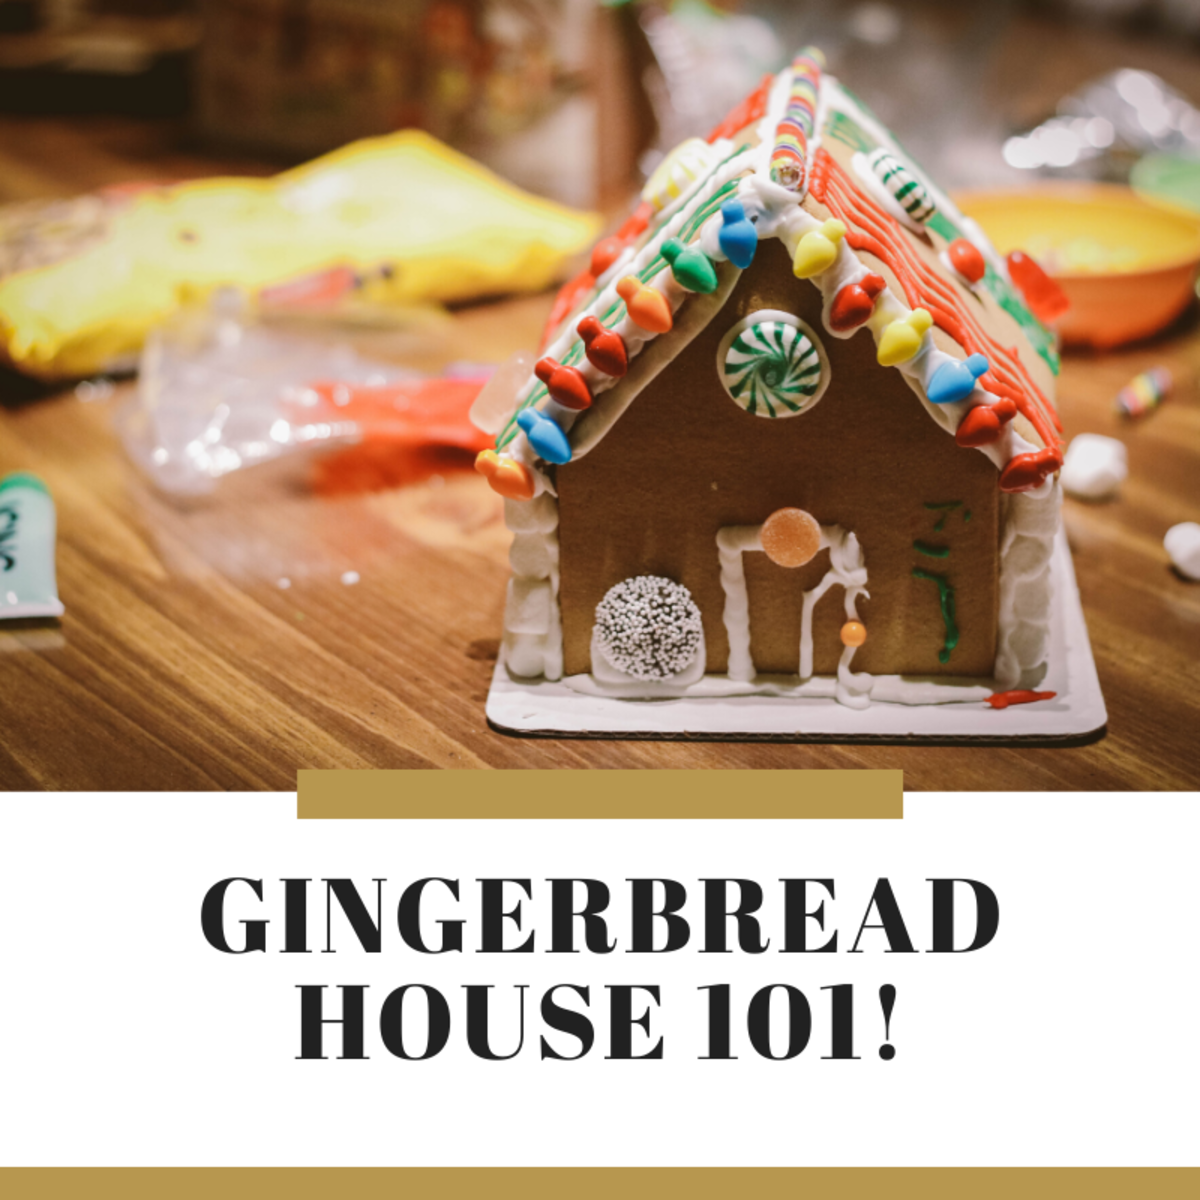 Gingerbread House 101: An Easy Recipe for Dough, Icing, and Assembly